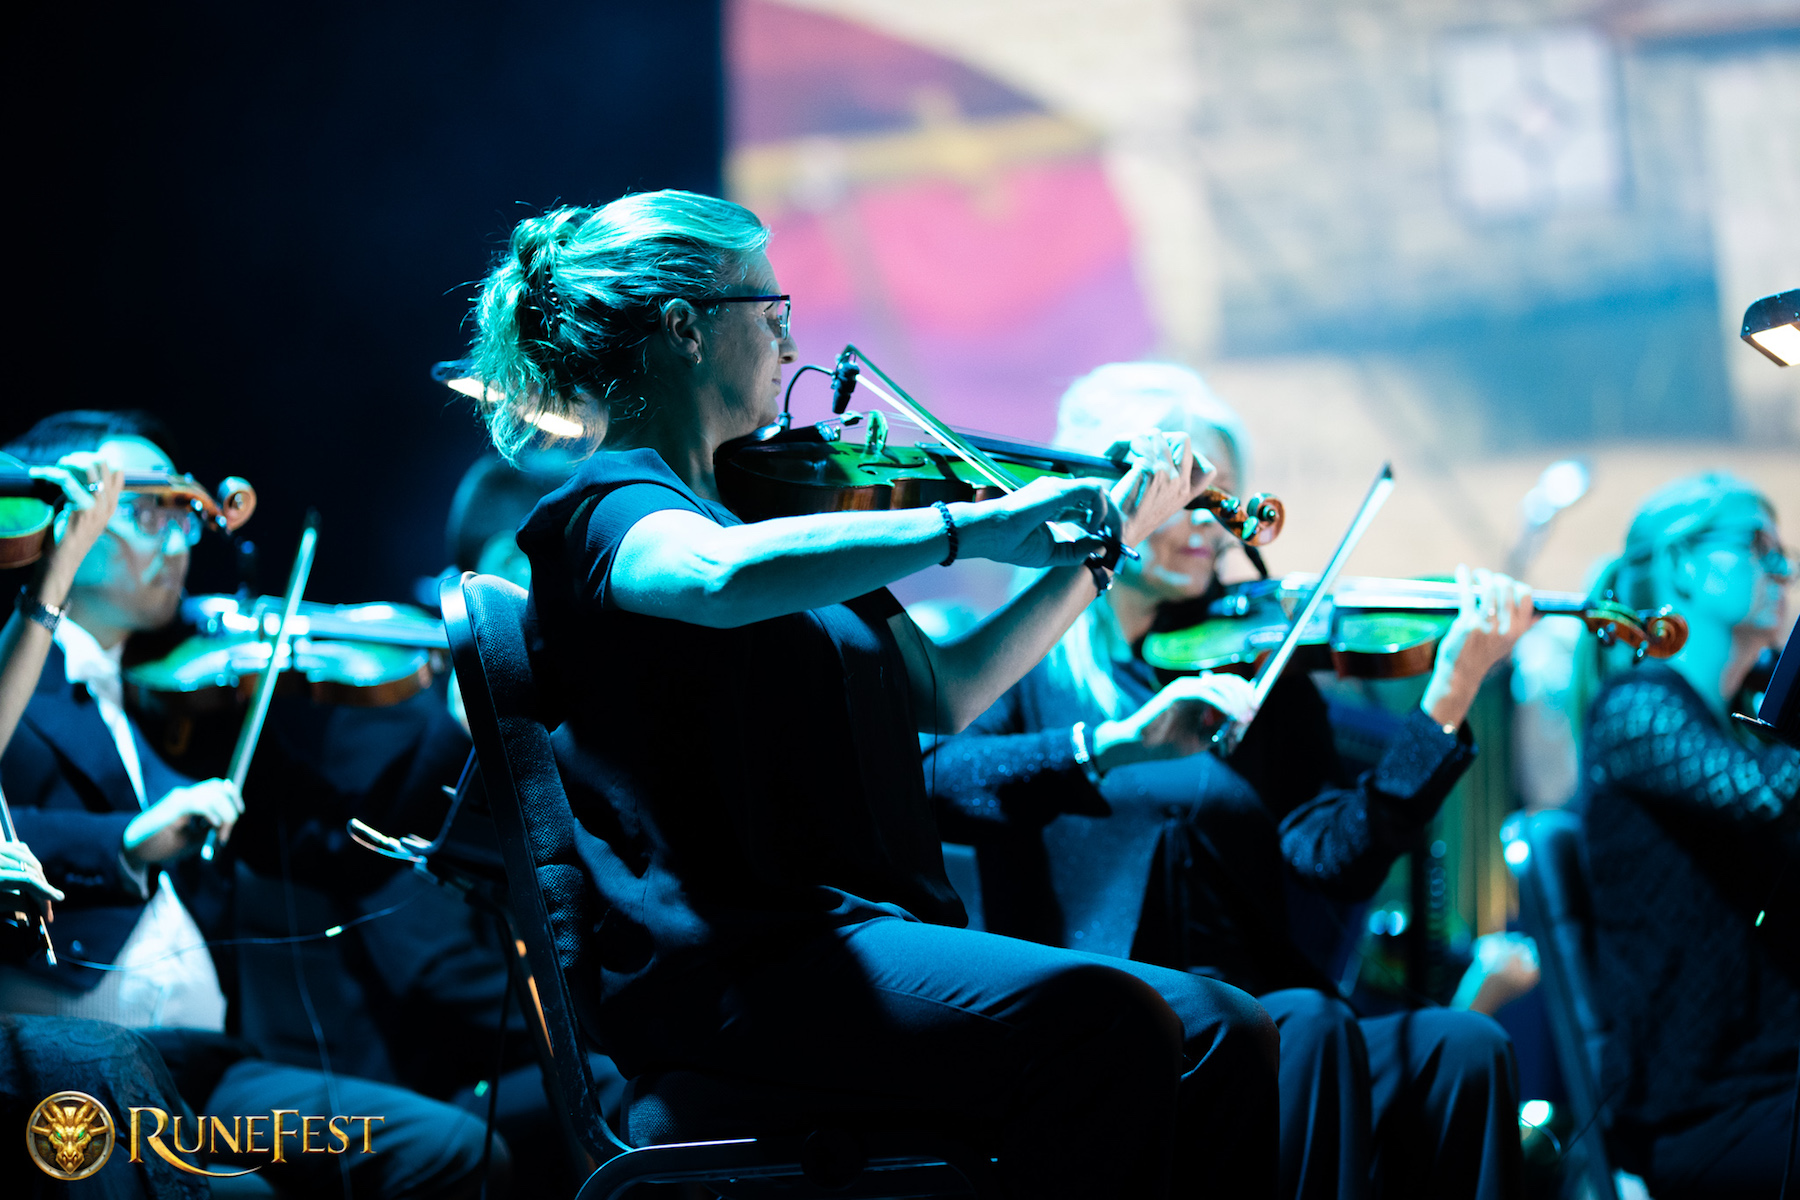 Runefest image - The string section of the Royal Philharmonic Concert Orchestra